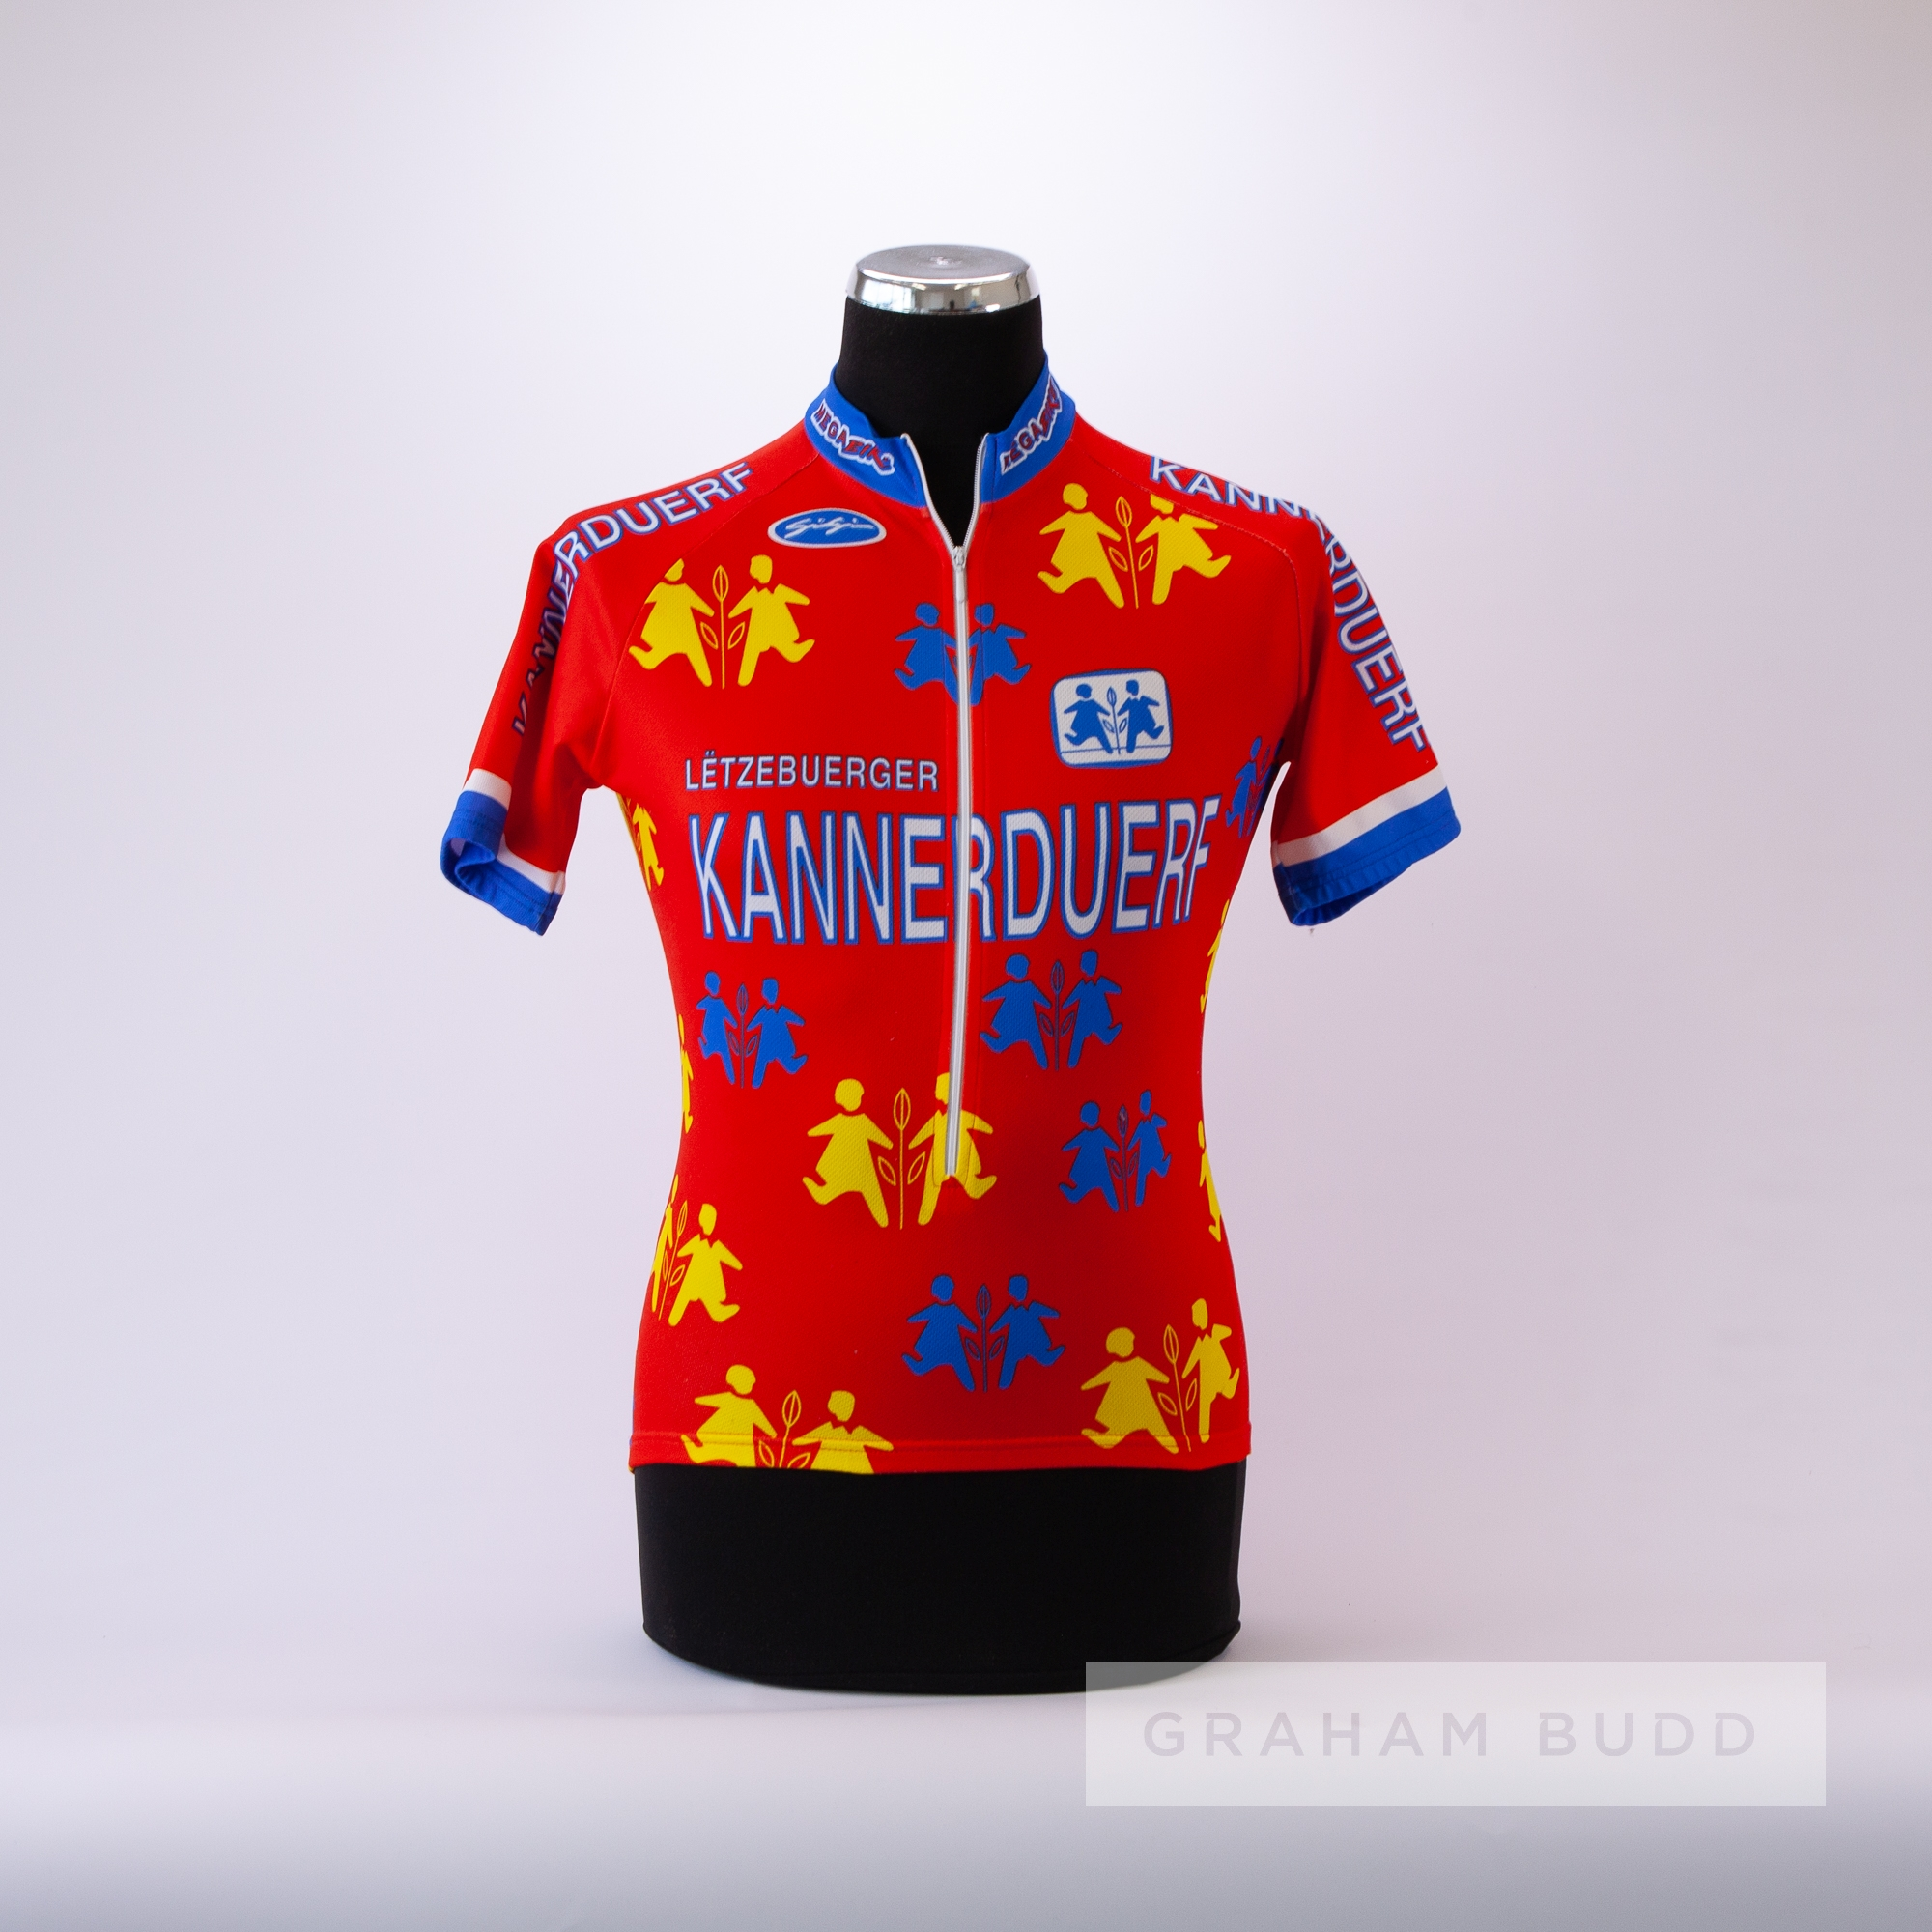 1985 orange, white, red and yellow Gigi Cycling team race jersey, scarce, polyester short-sleeved - Image 3 of 4